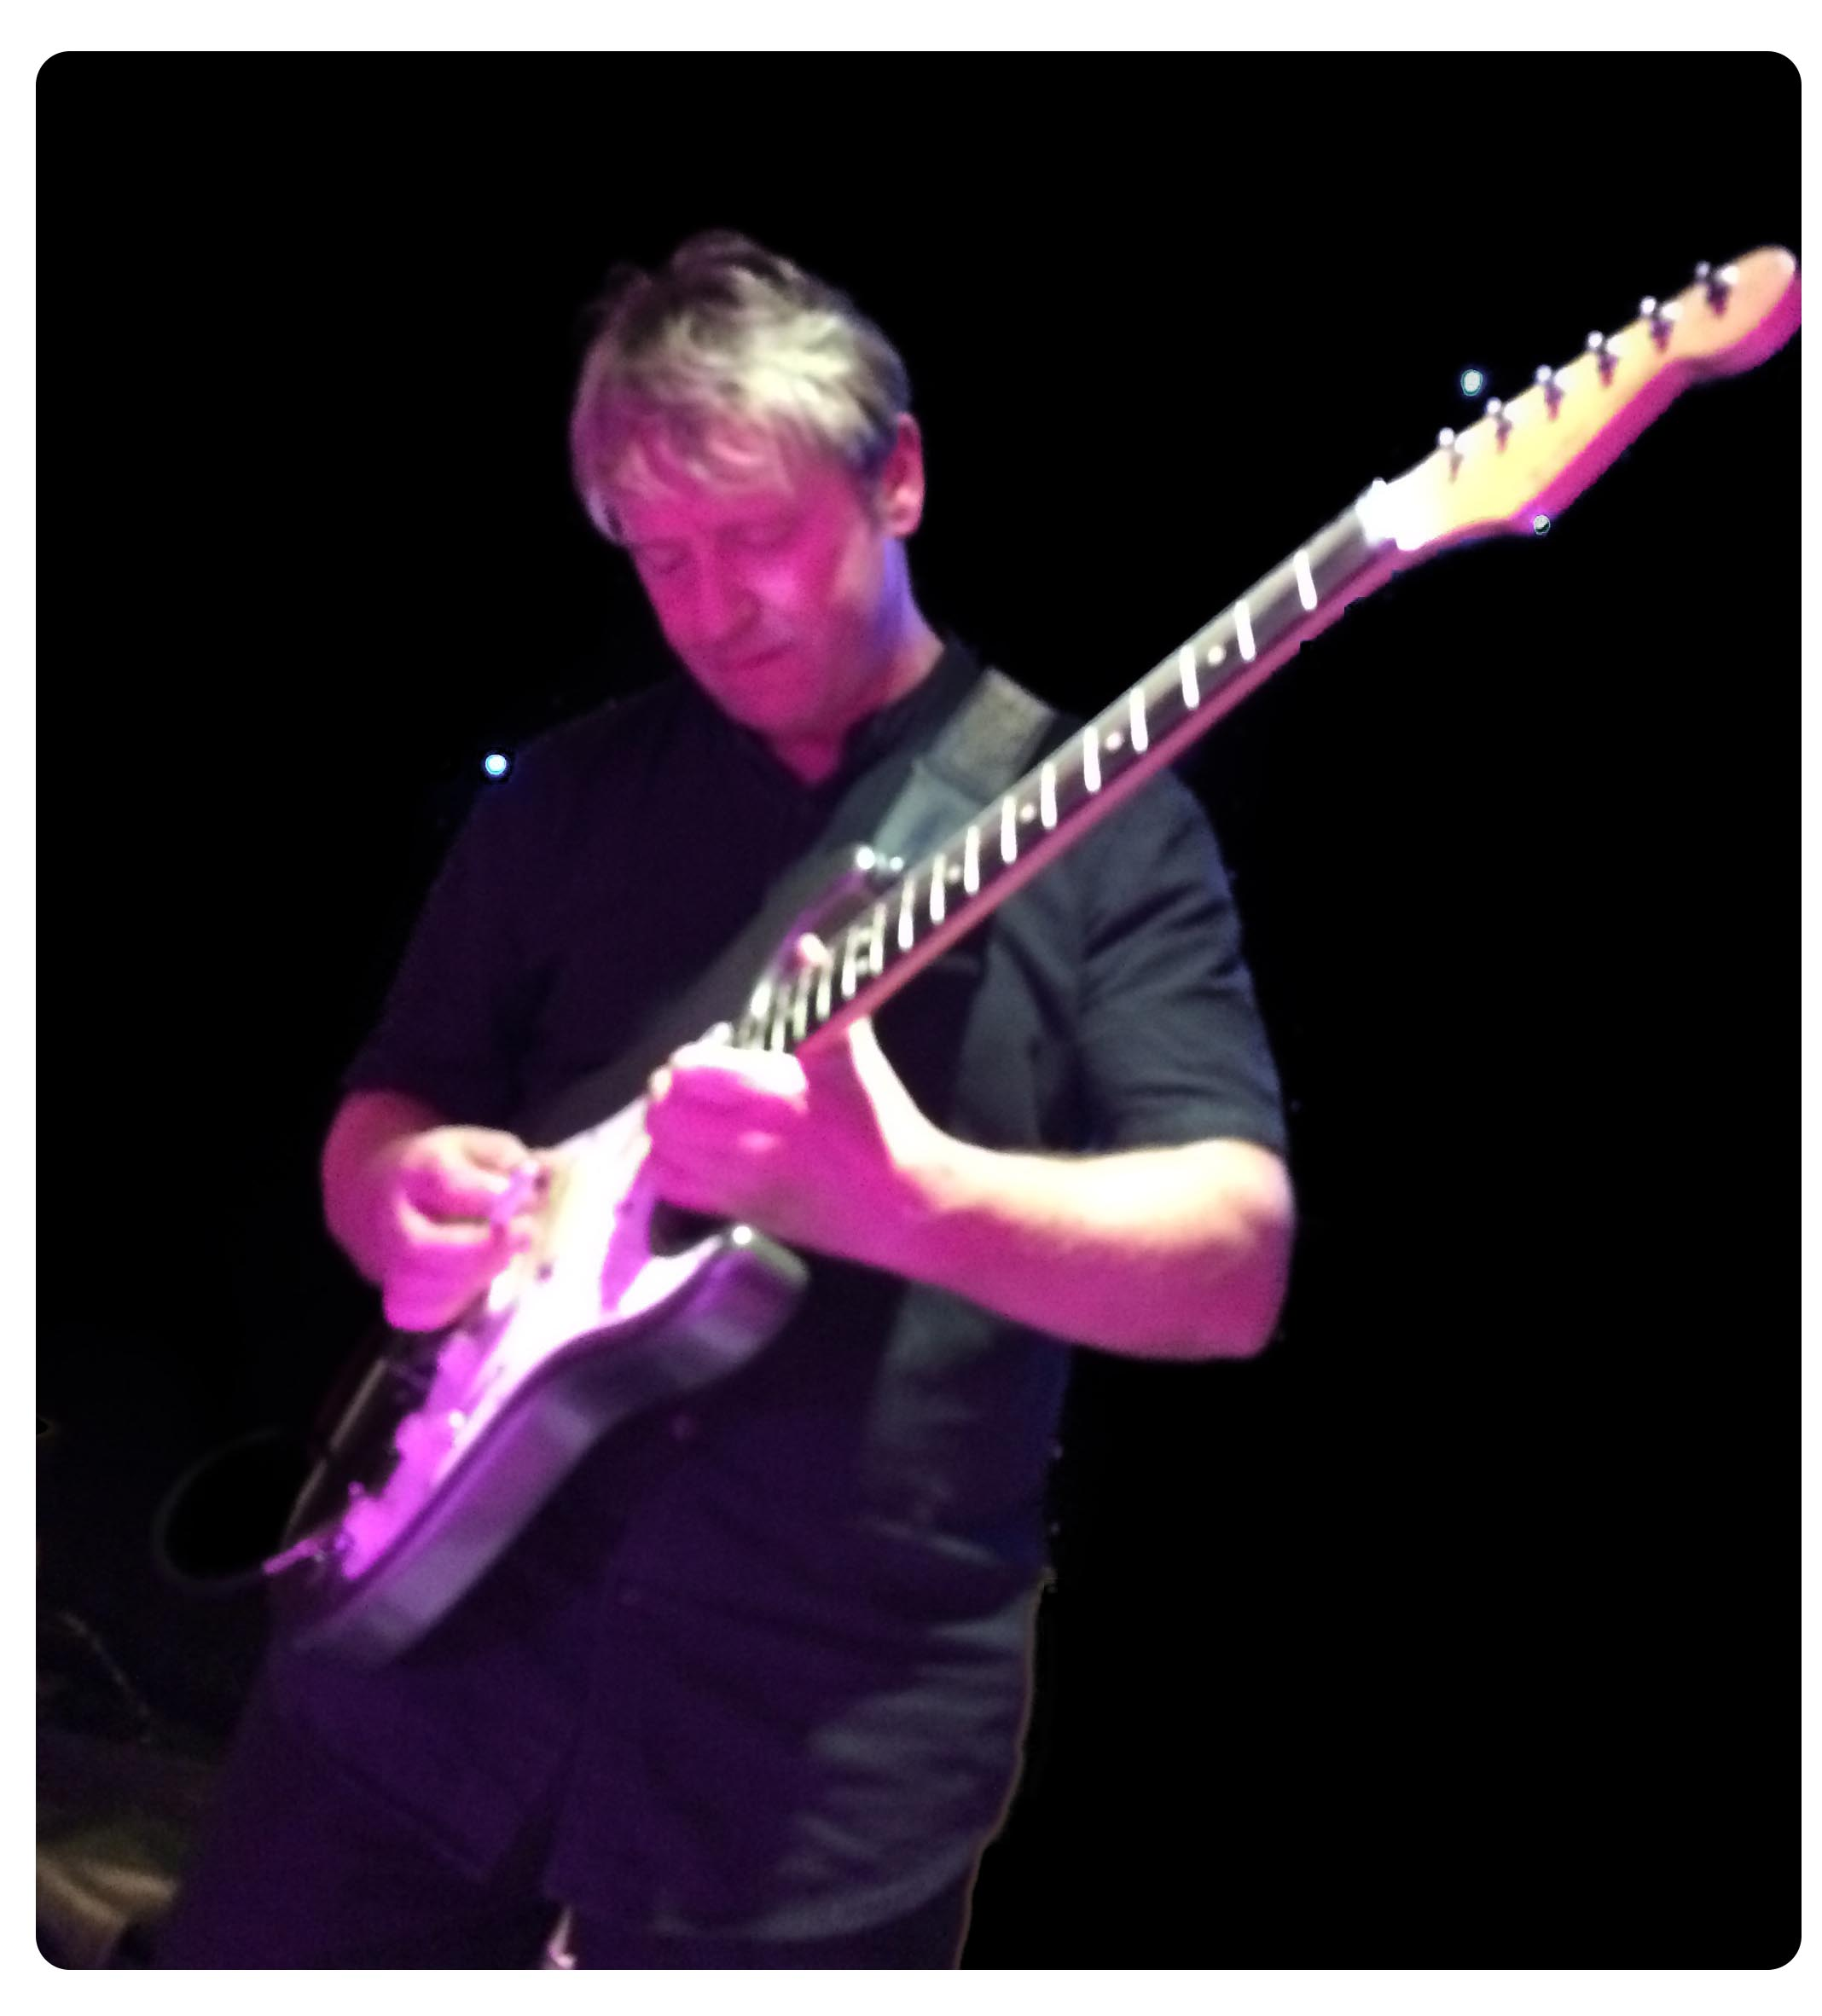 Image of Heart and Soul guitarist Mike Knight